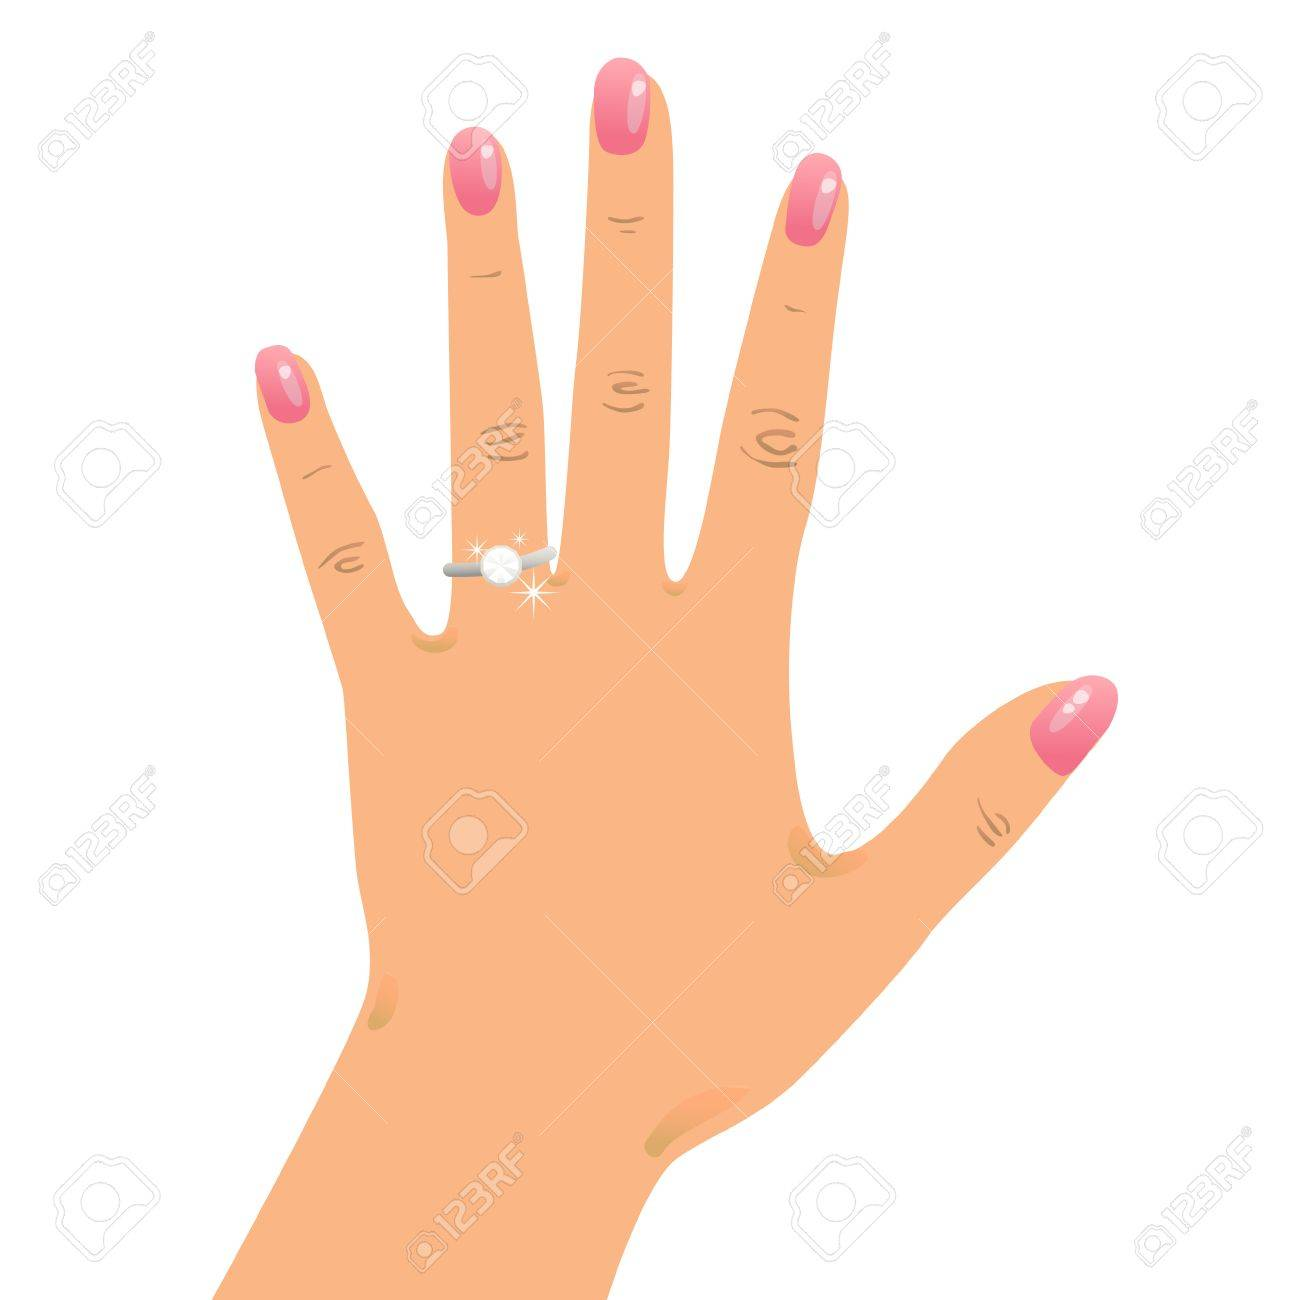 Hand Wearing Engagement Ring And Wedding Ring Royalty Free Cliparts